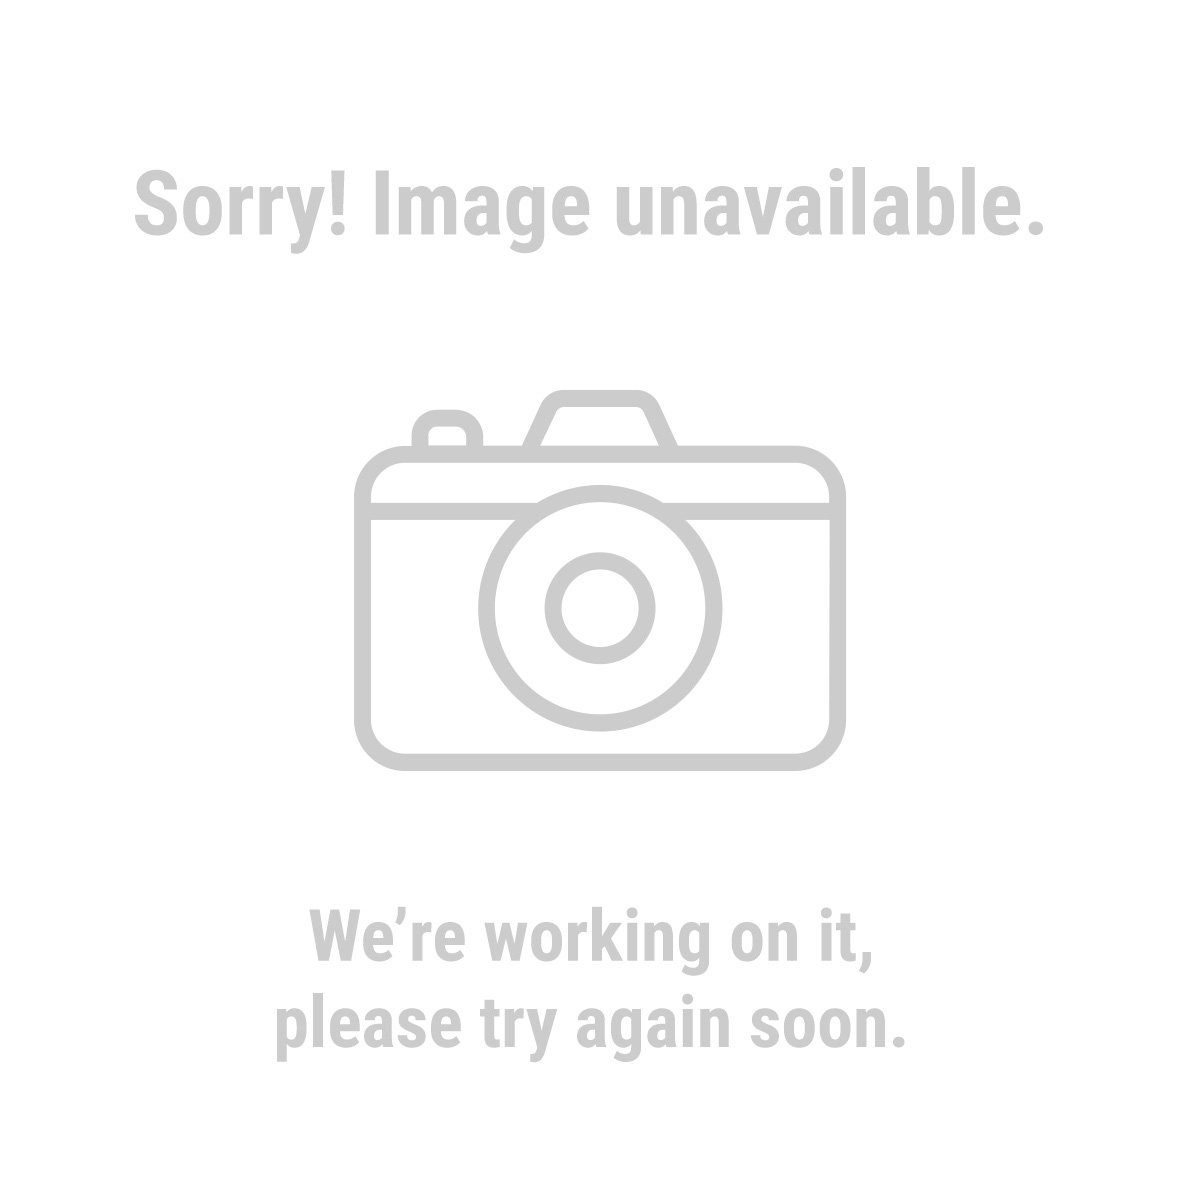 93833 Replacement Trailer Hub Dust Cap